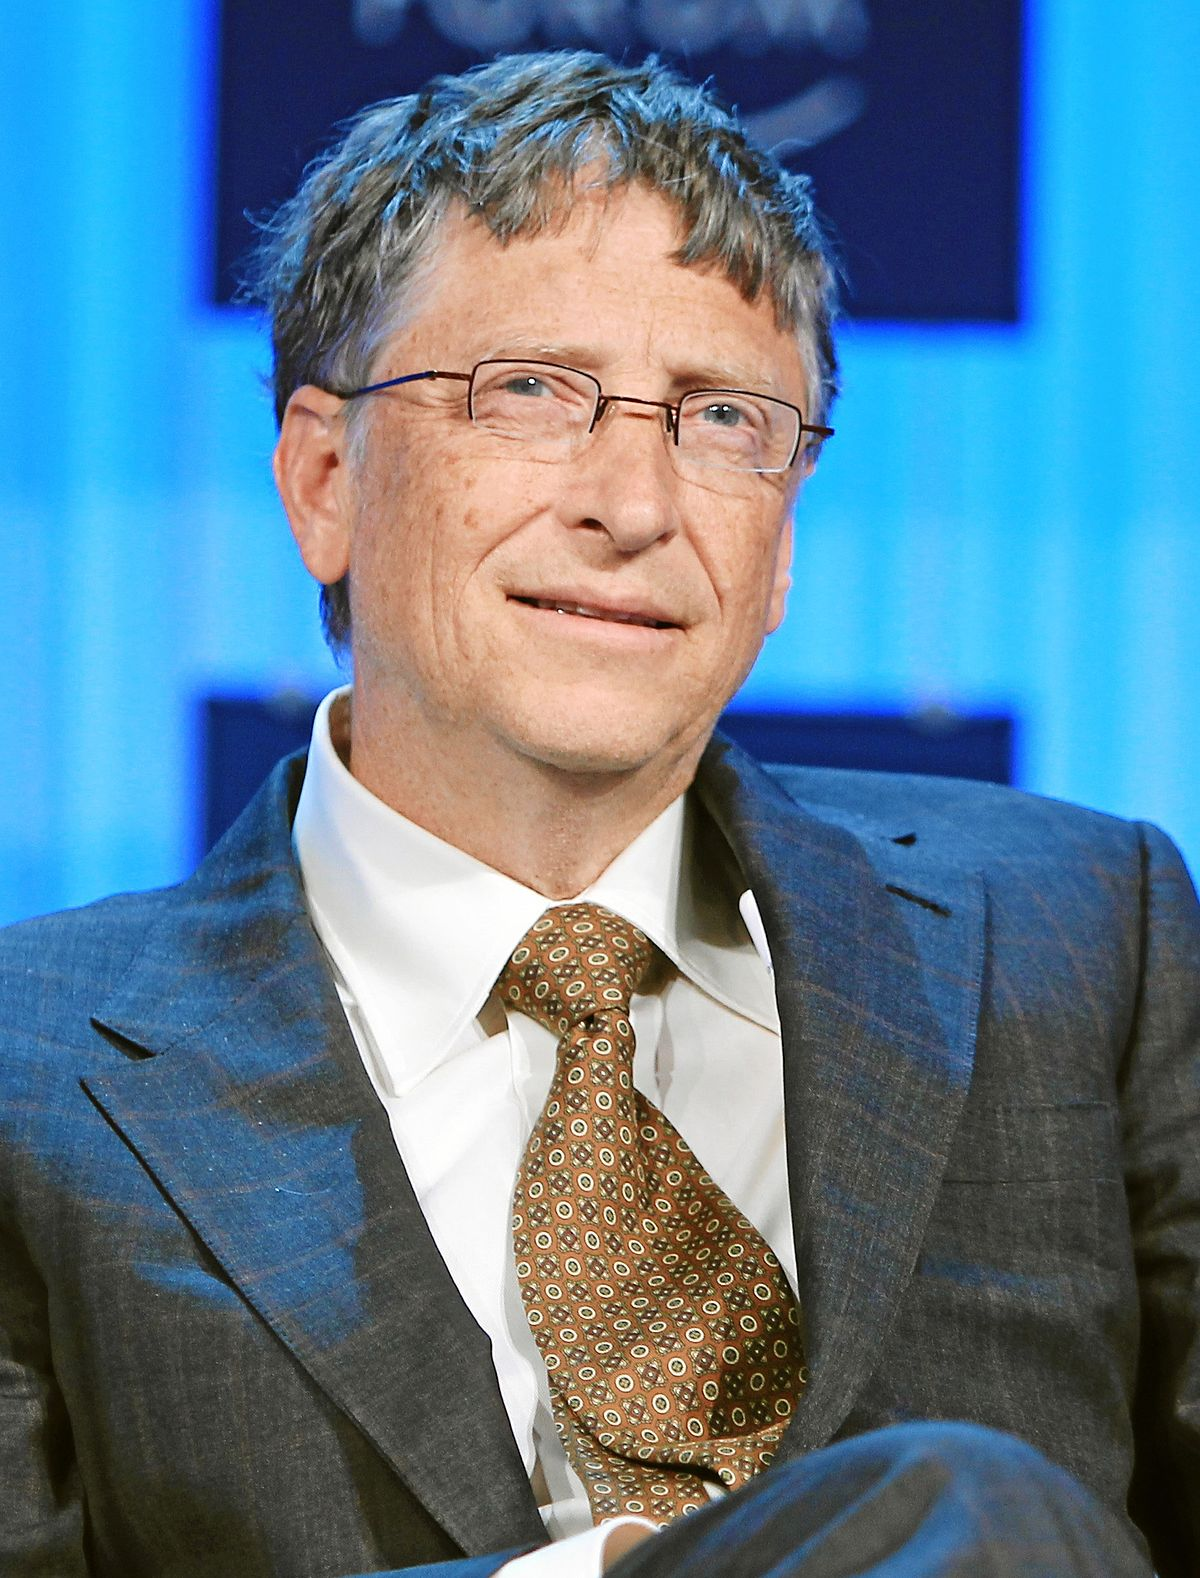 Bill Gates With Cat Ears